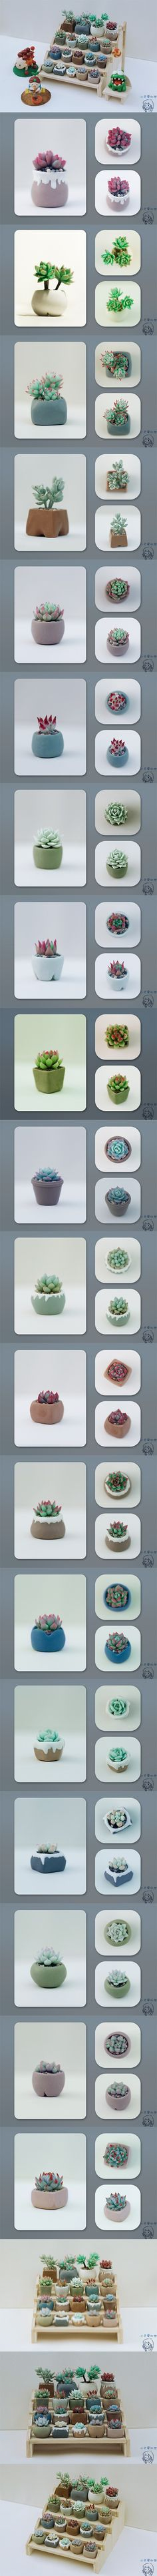 Succulent potted plants